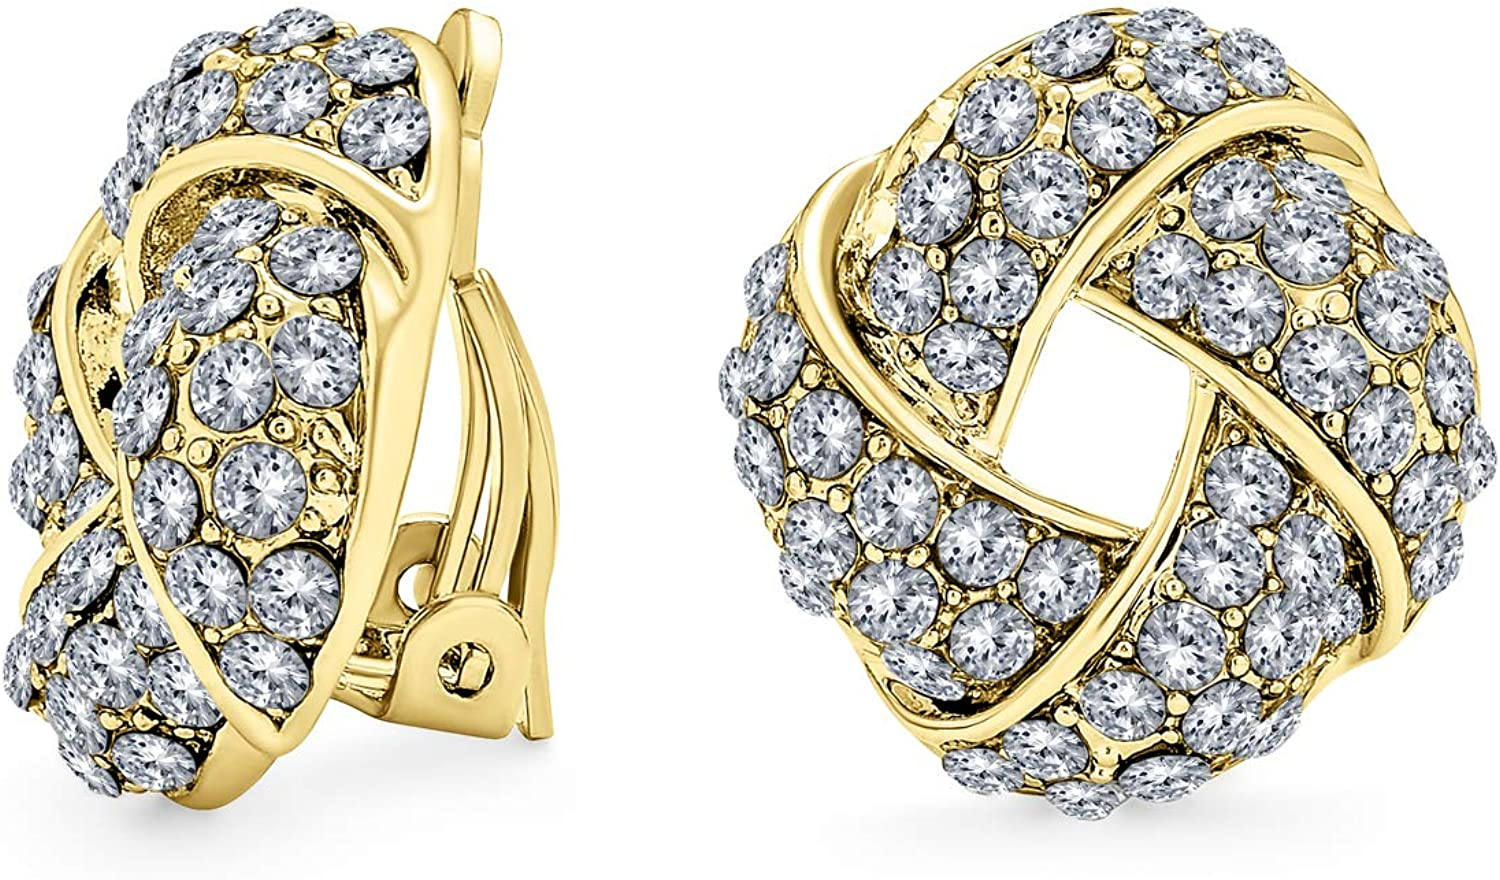 Woven White Clear Crystal Love Knot Work Clip On Earrings For Women Non Pierced Ears 14K Gold Plated Brass